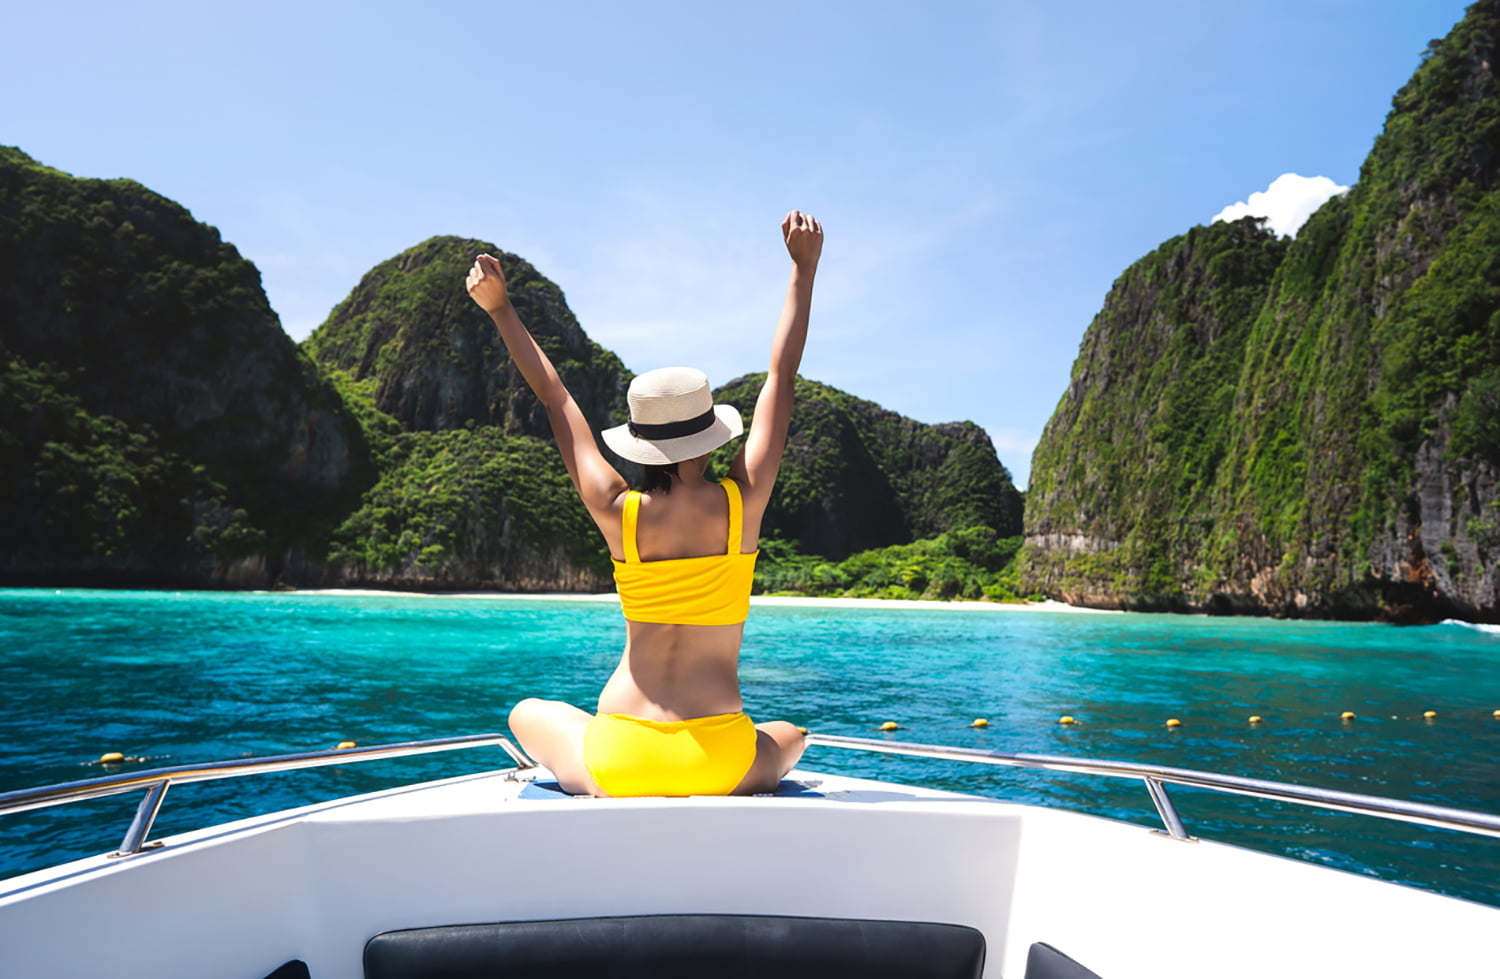 5 Reasons Why Going on a Luxury Holiday is Just What You Need Right Now